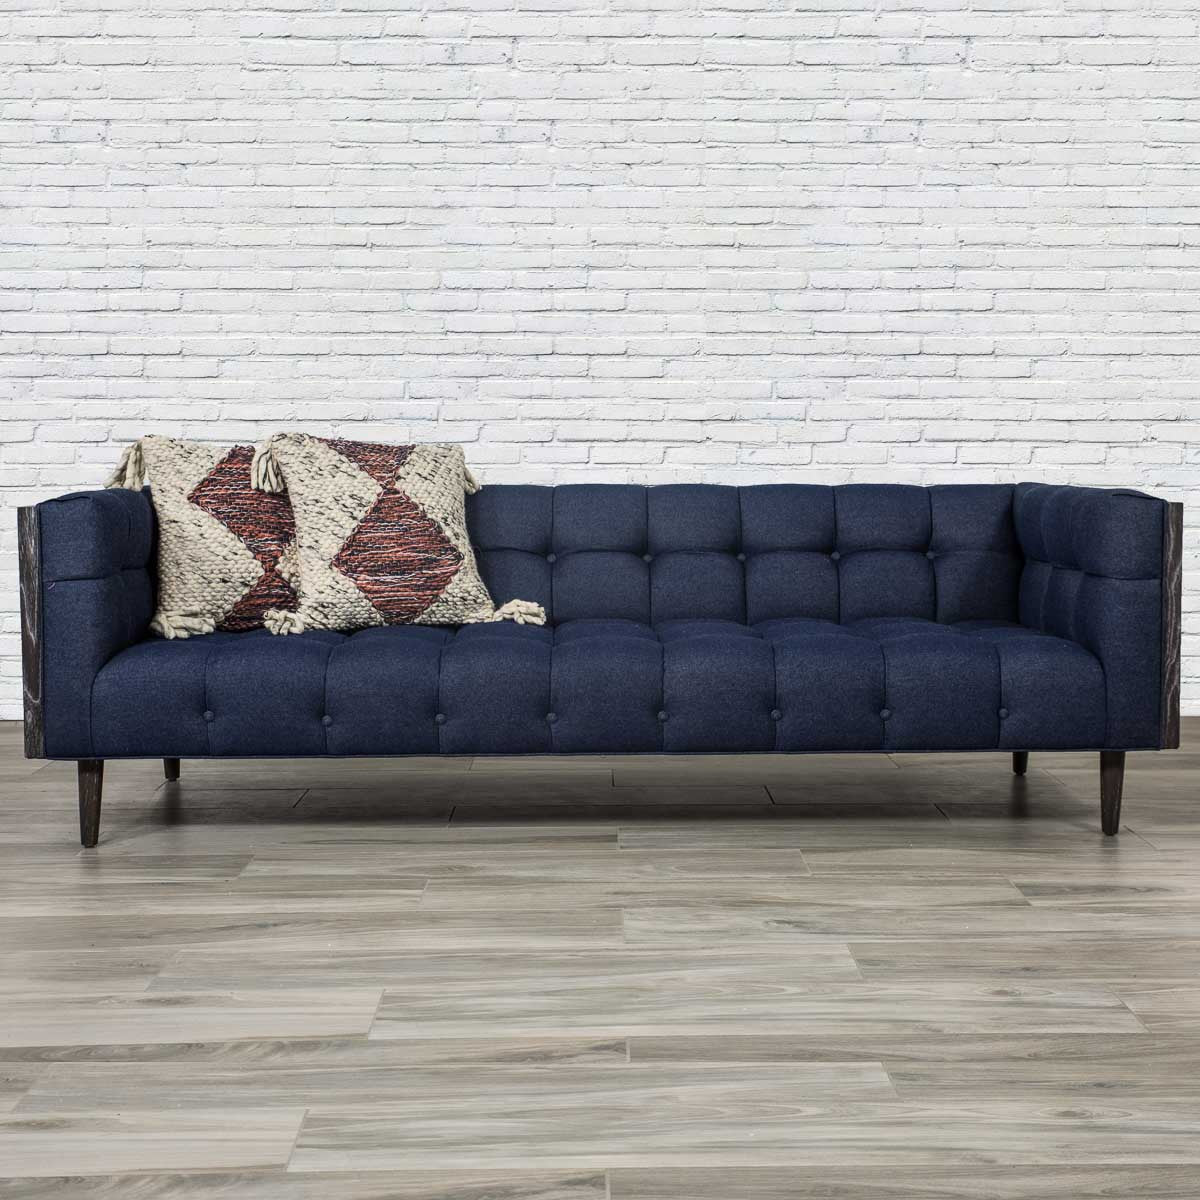 Mid Century Sofa In Dark Navy Raw Denim Modshop